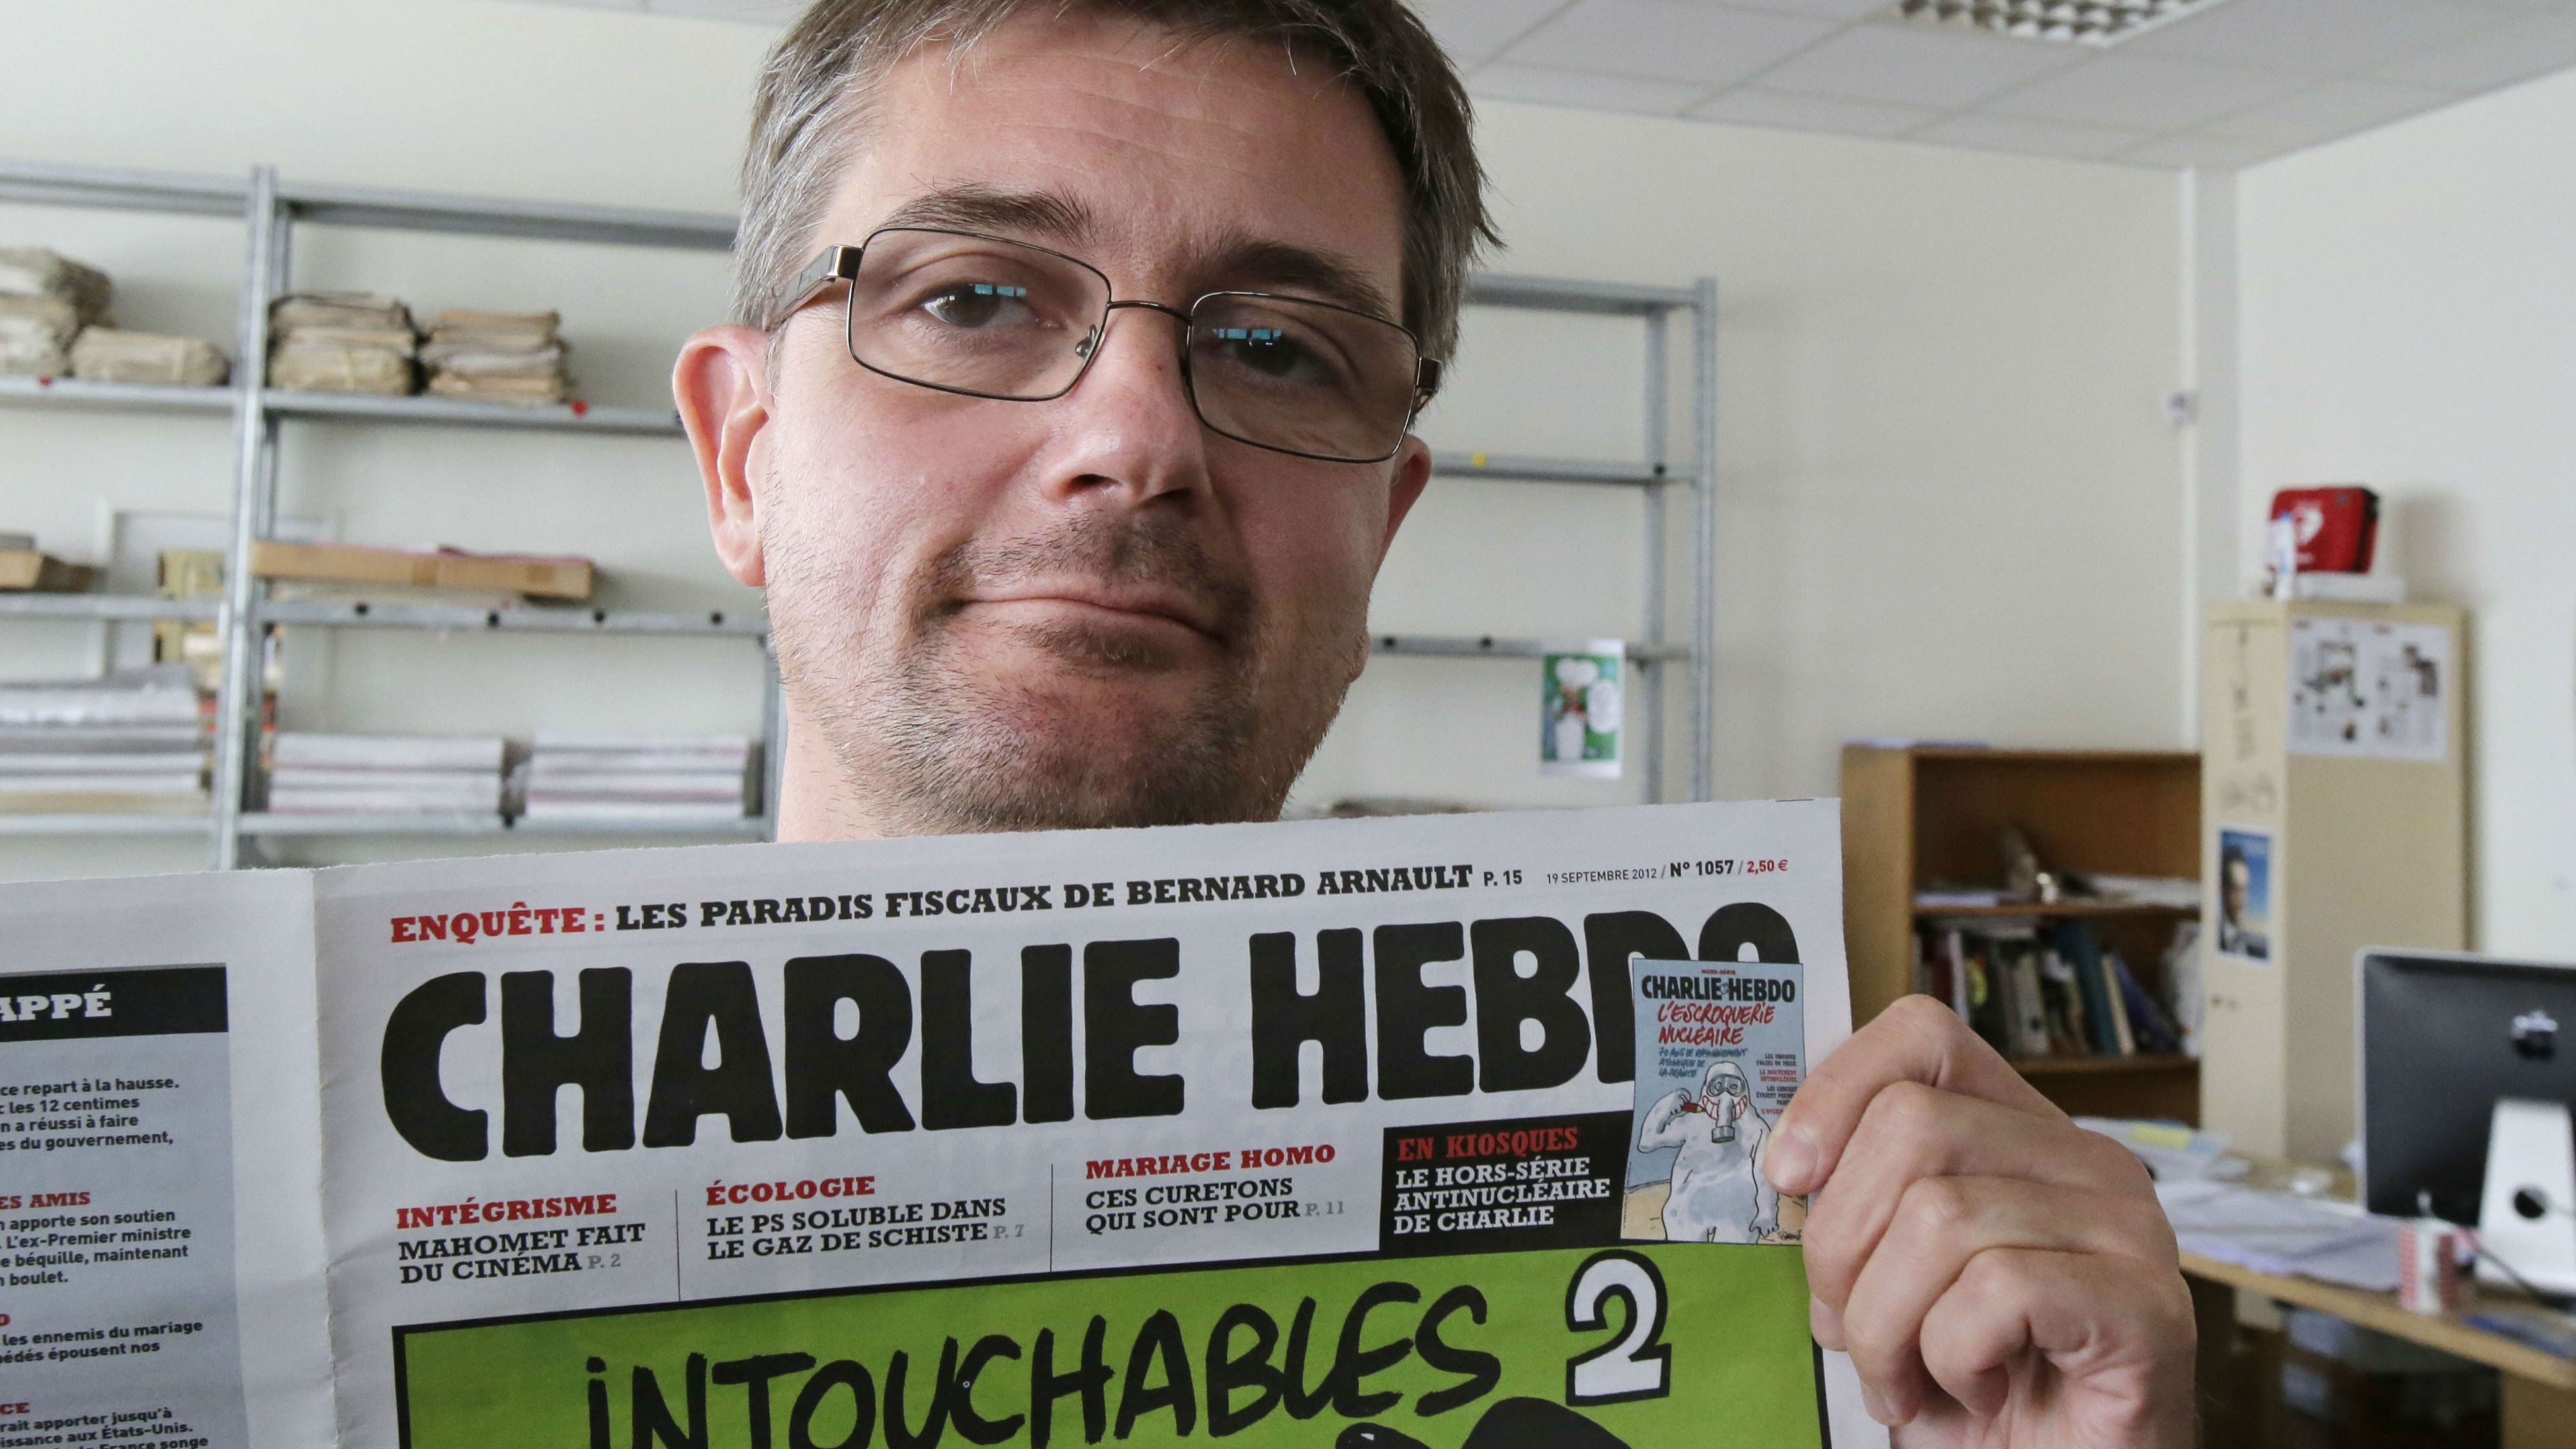 "Publishing director of the satyric weekly Charlie Hebdo, Charb, displays the front page of the newspaper as he poses for photographers in Paris, Wednesday, Sept. 19, 2012. Police took up positions outside the Paris offices of the satirical French weekly that published crude caricatures of the Prophet Muhammad on Wednesday that ridicule the film and the furor surrounding it. The provocative weekly, Charlie Hebdo, was firebombed last year after it released a special edition that portrayed the Prophet Muhammad as a ""guest editor"" and took aim at radical Islam. (AP Photo/MIchel Euler)"